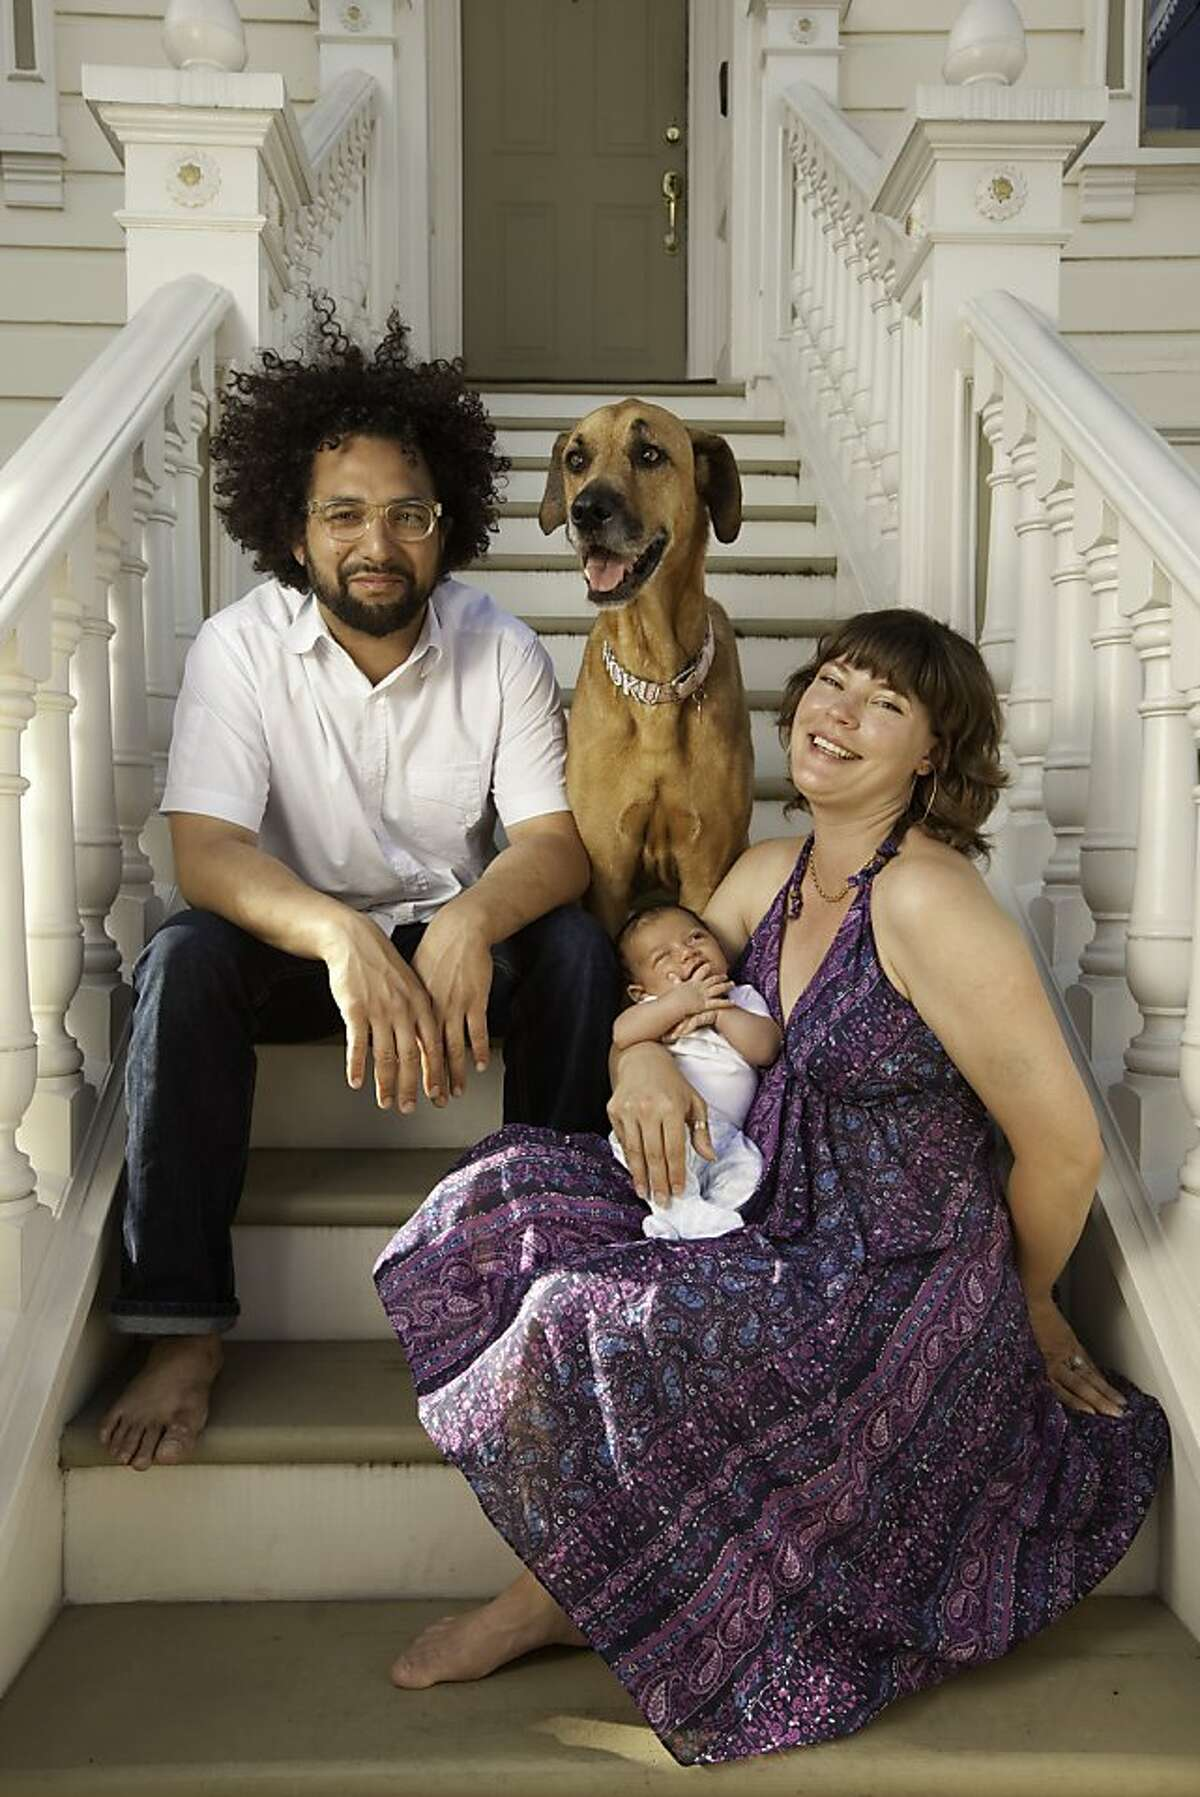 Ravi Kapur, chef of Prospect restaurant, and his wife, April, with their 6 week-old son, Makoa, and dog, Hoku in San Francisco, California, on Monday, June 20, 2011.